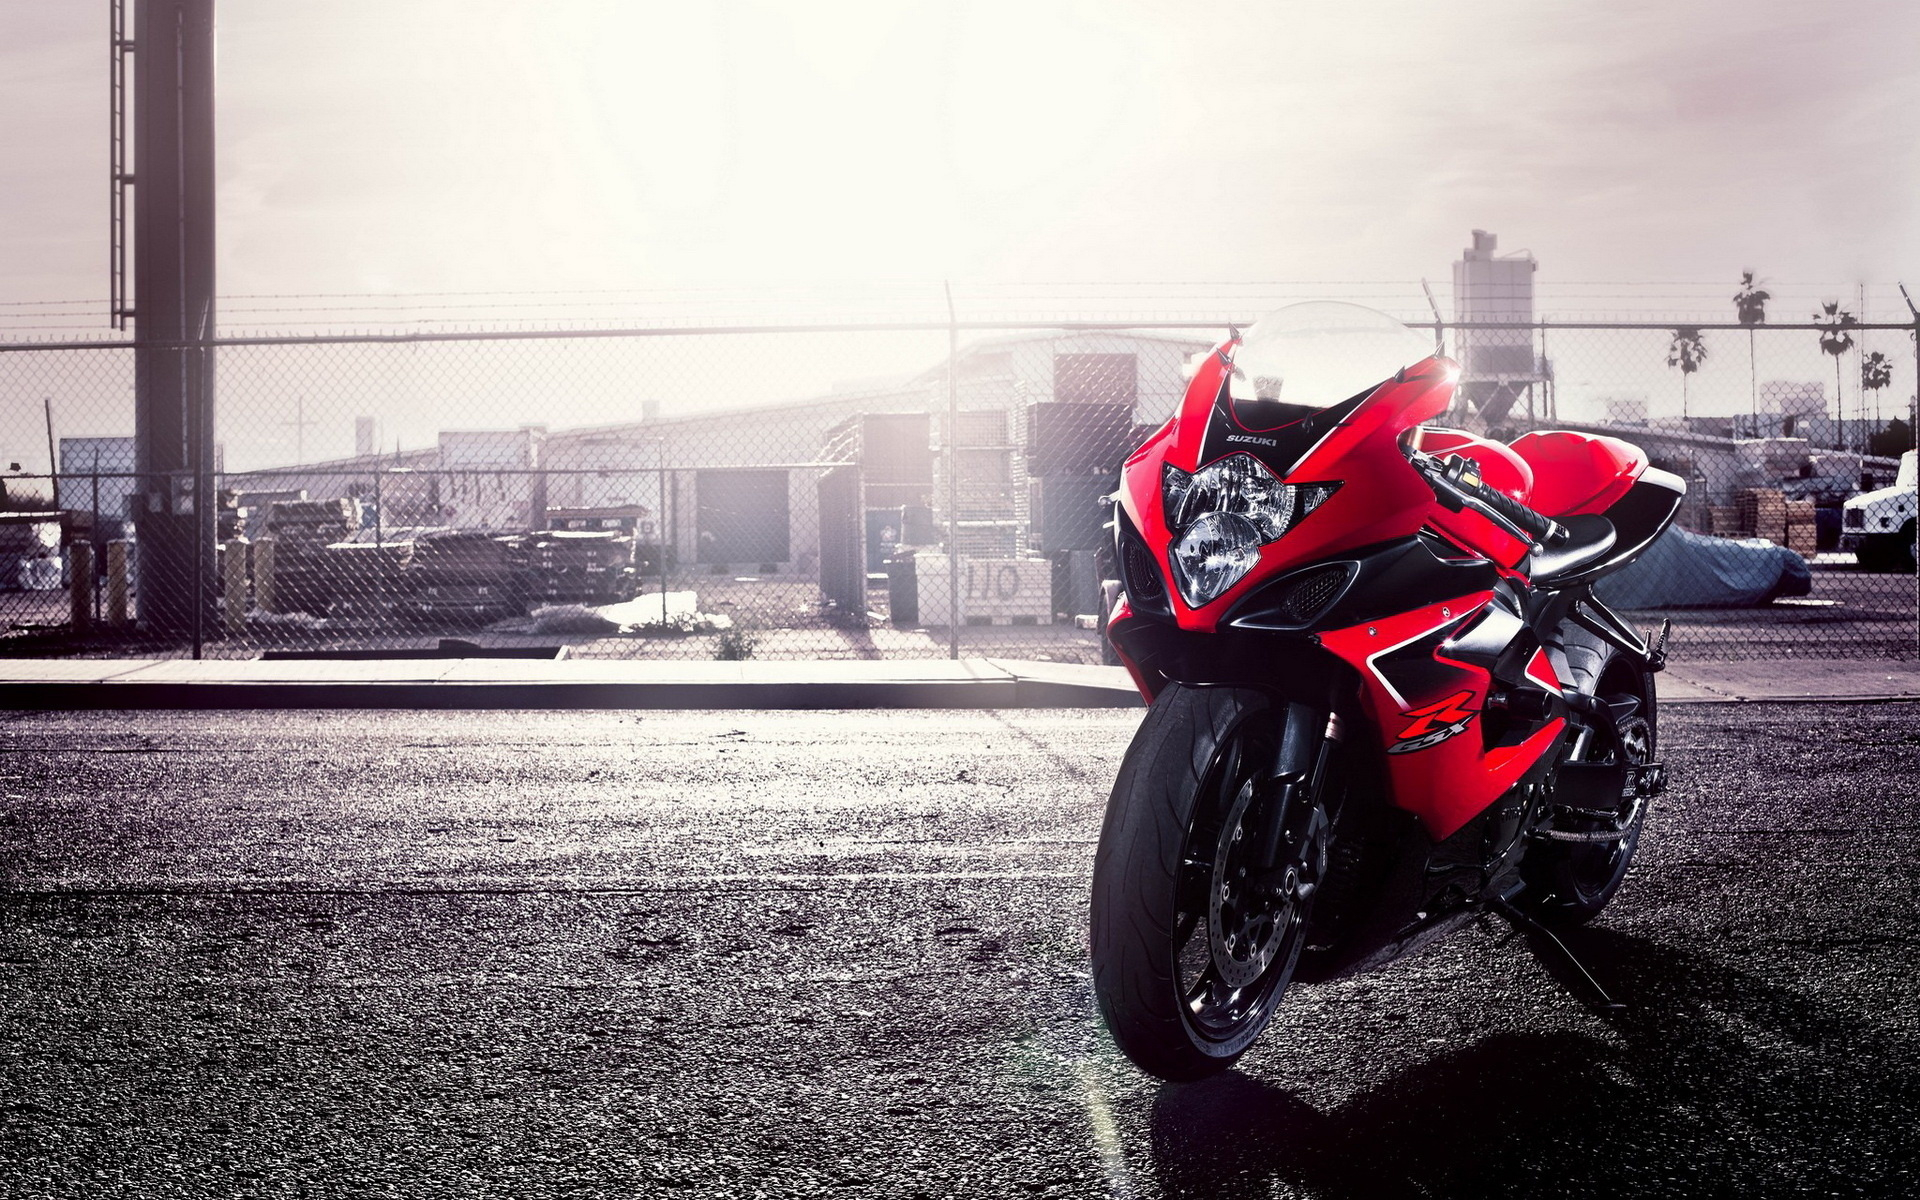 HD Wallpapers Of Cars And Bikes